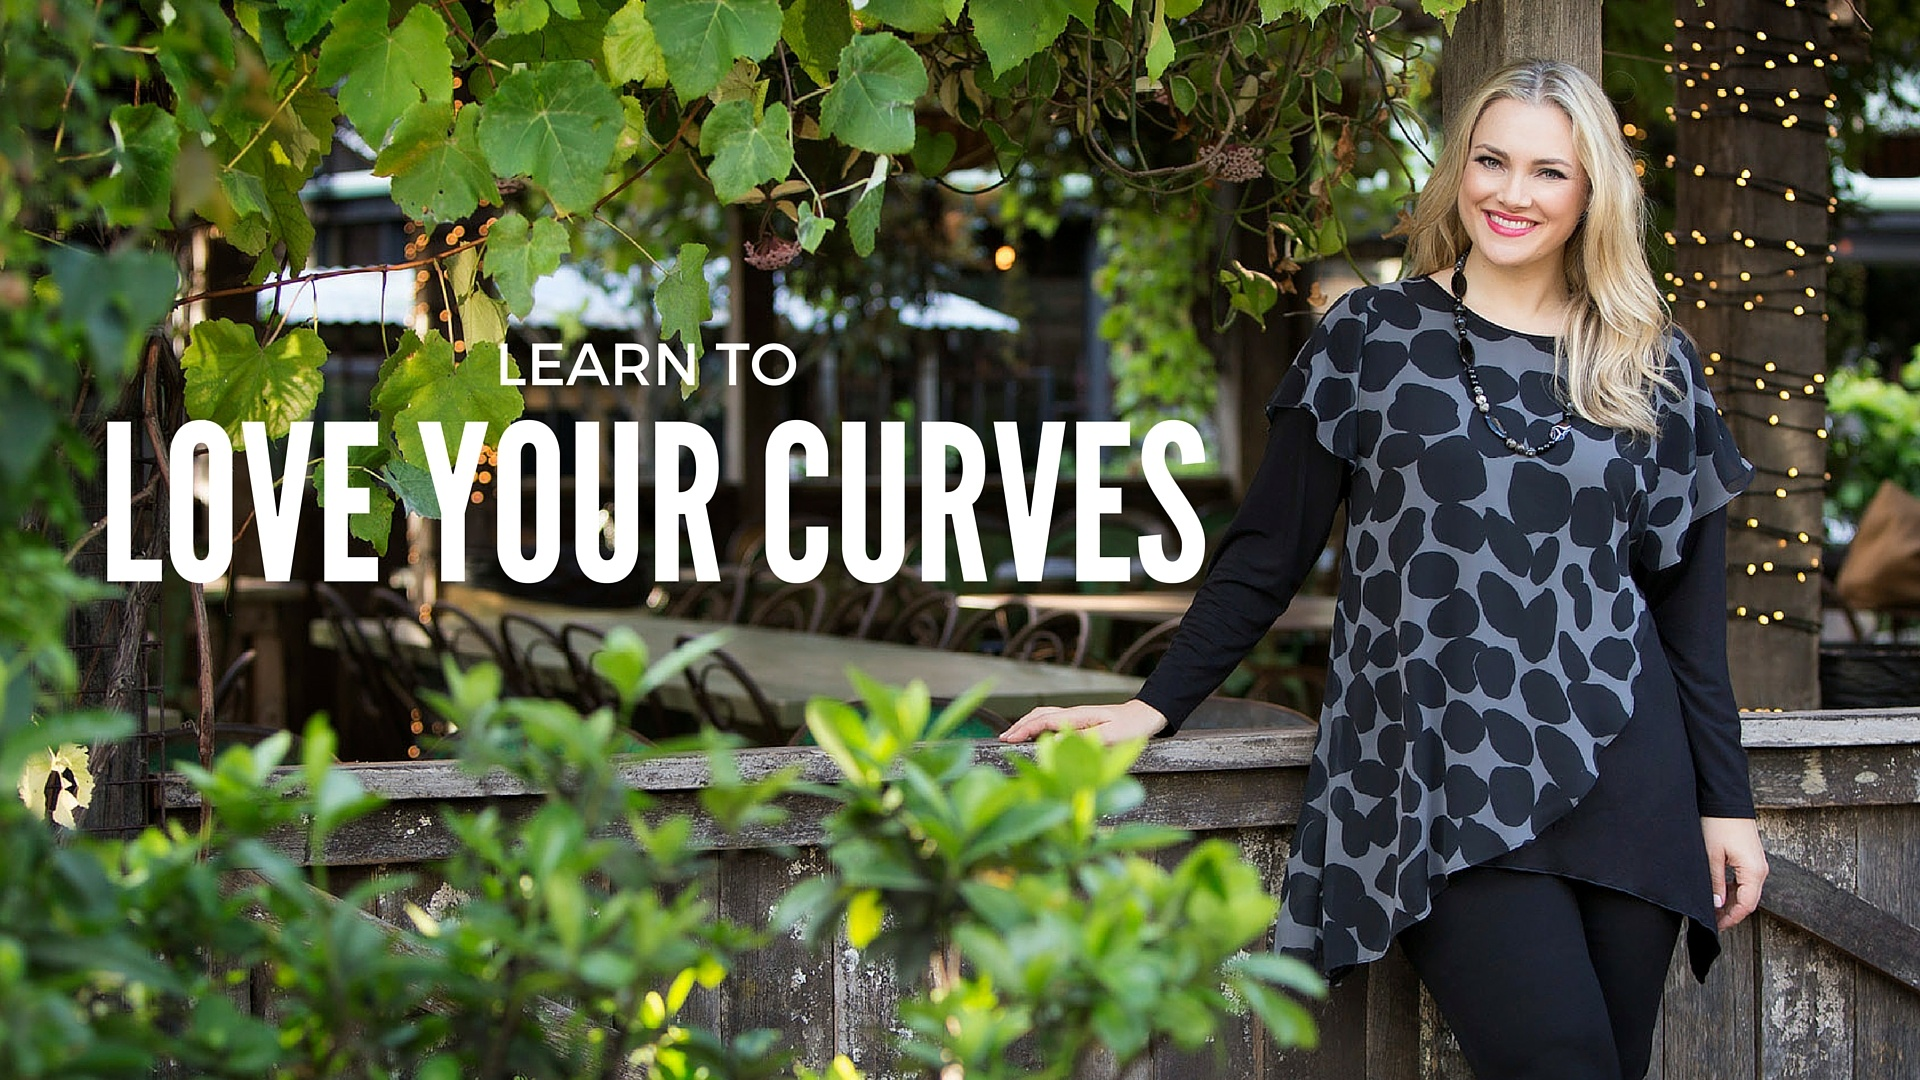 LEARN_TO_LOVE_YOUR_CURVES.jpg